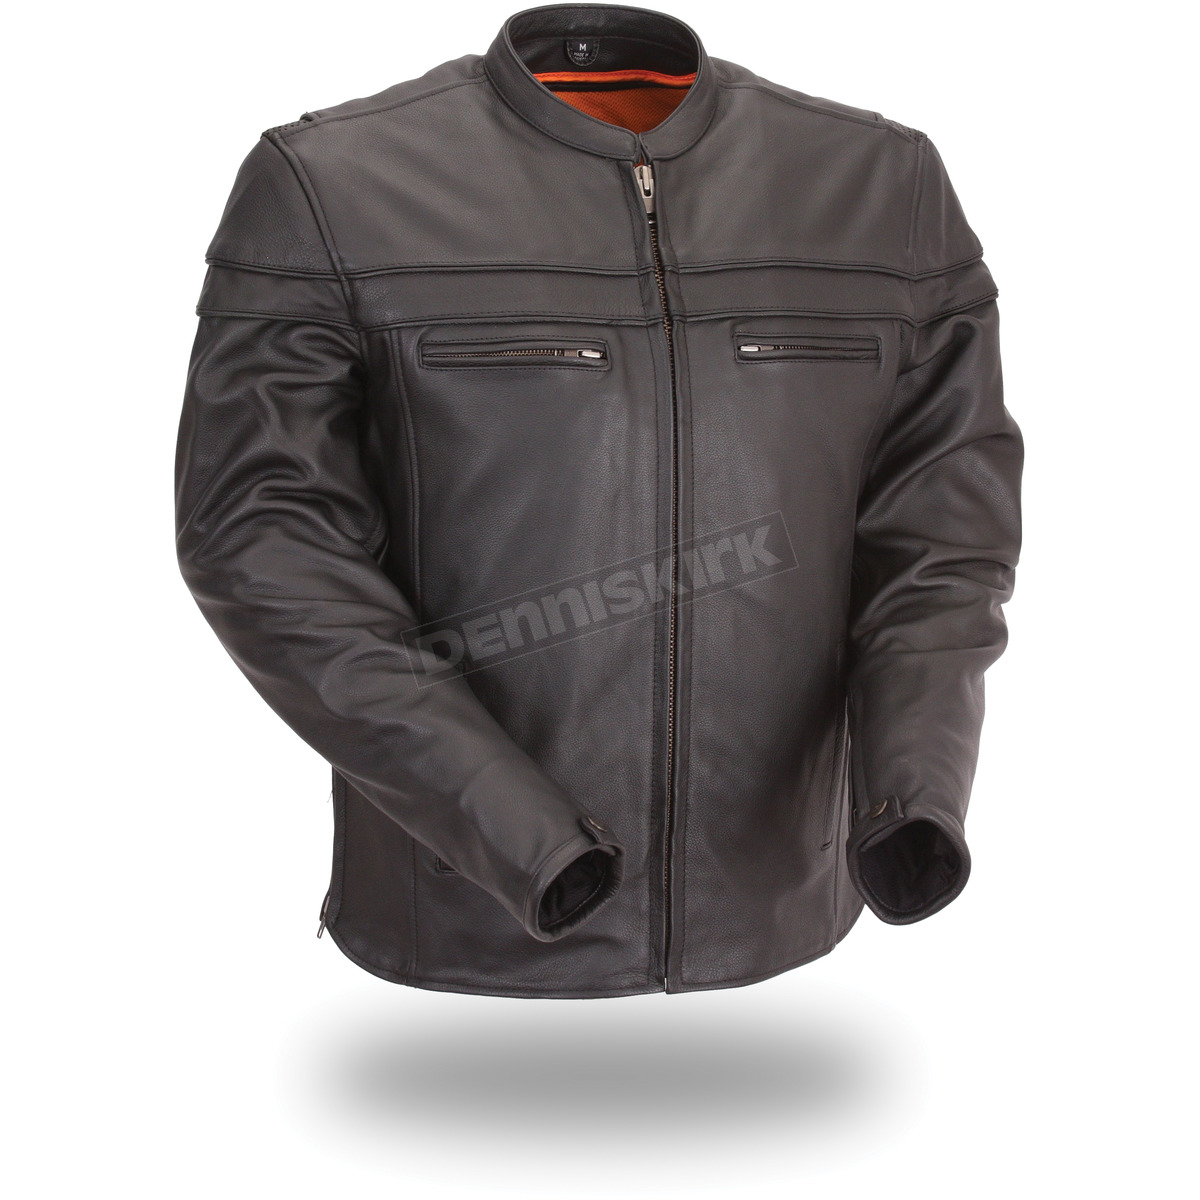 First Mfg Co Womens Speedy Leather Motorcycle Jacket Black XXX-Large